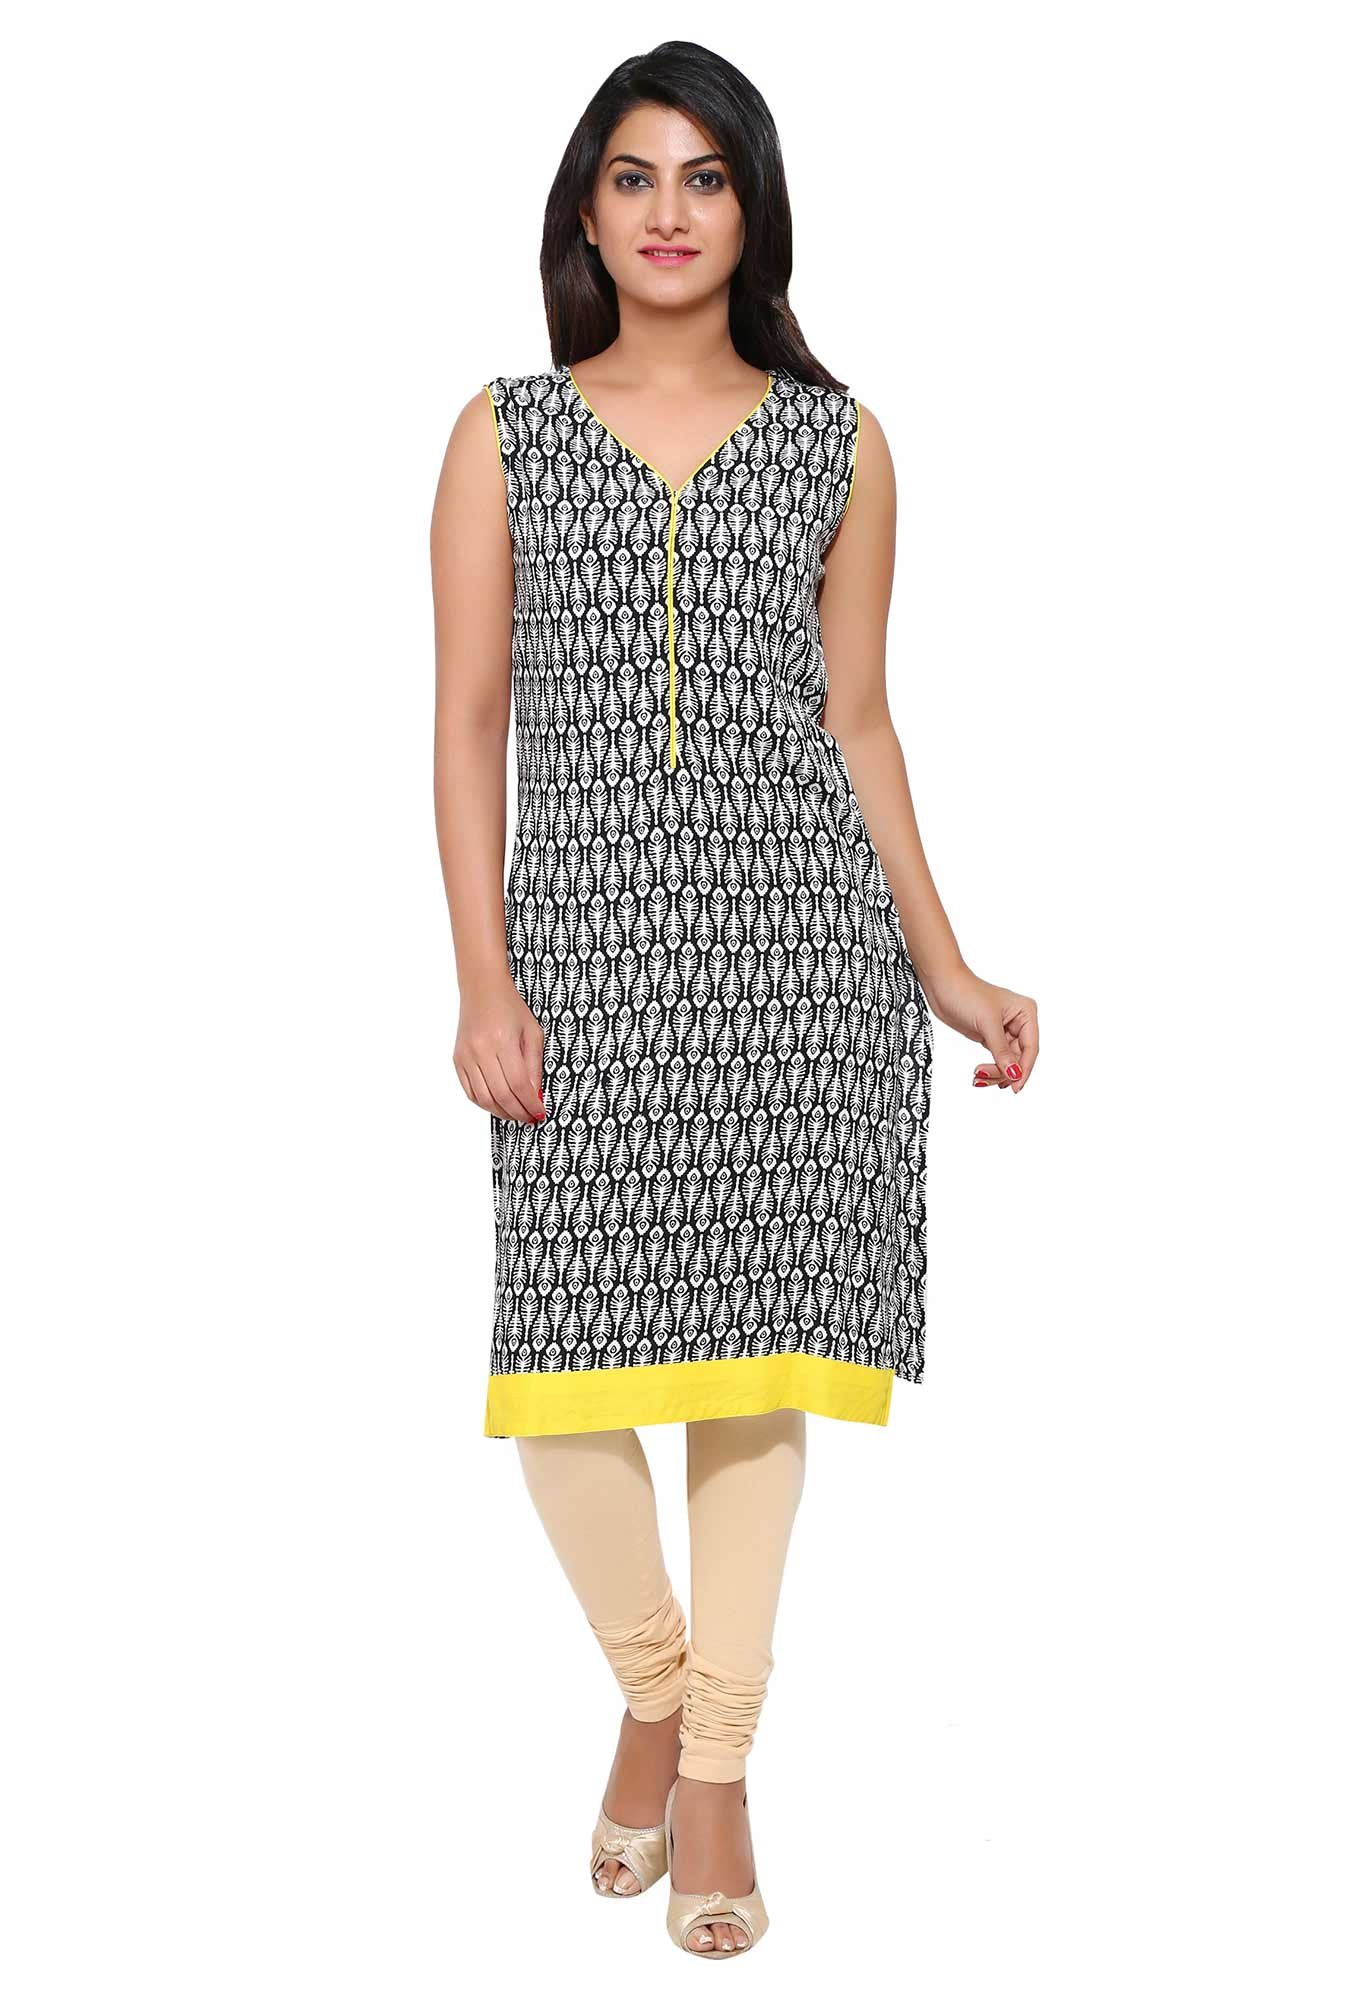 Aaboli White & Black Printed Rayon Straight Kurta